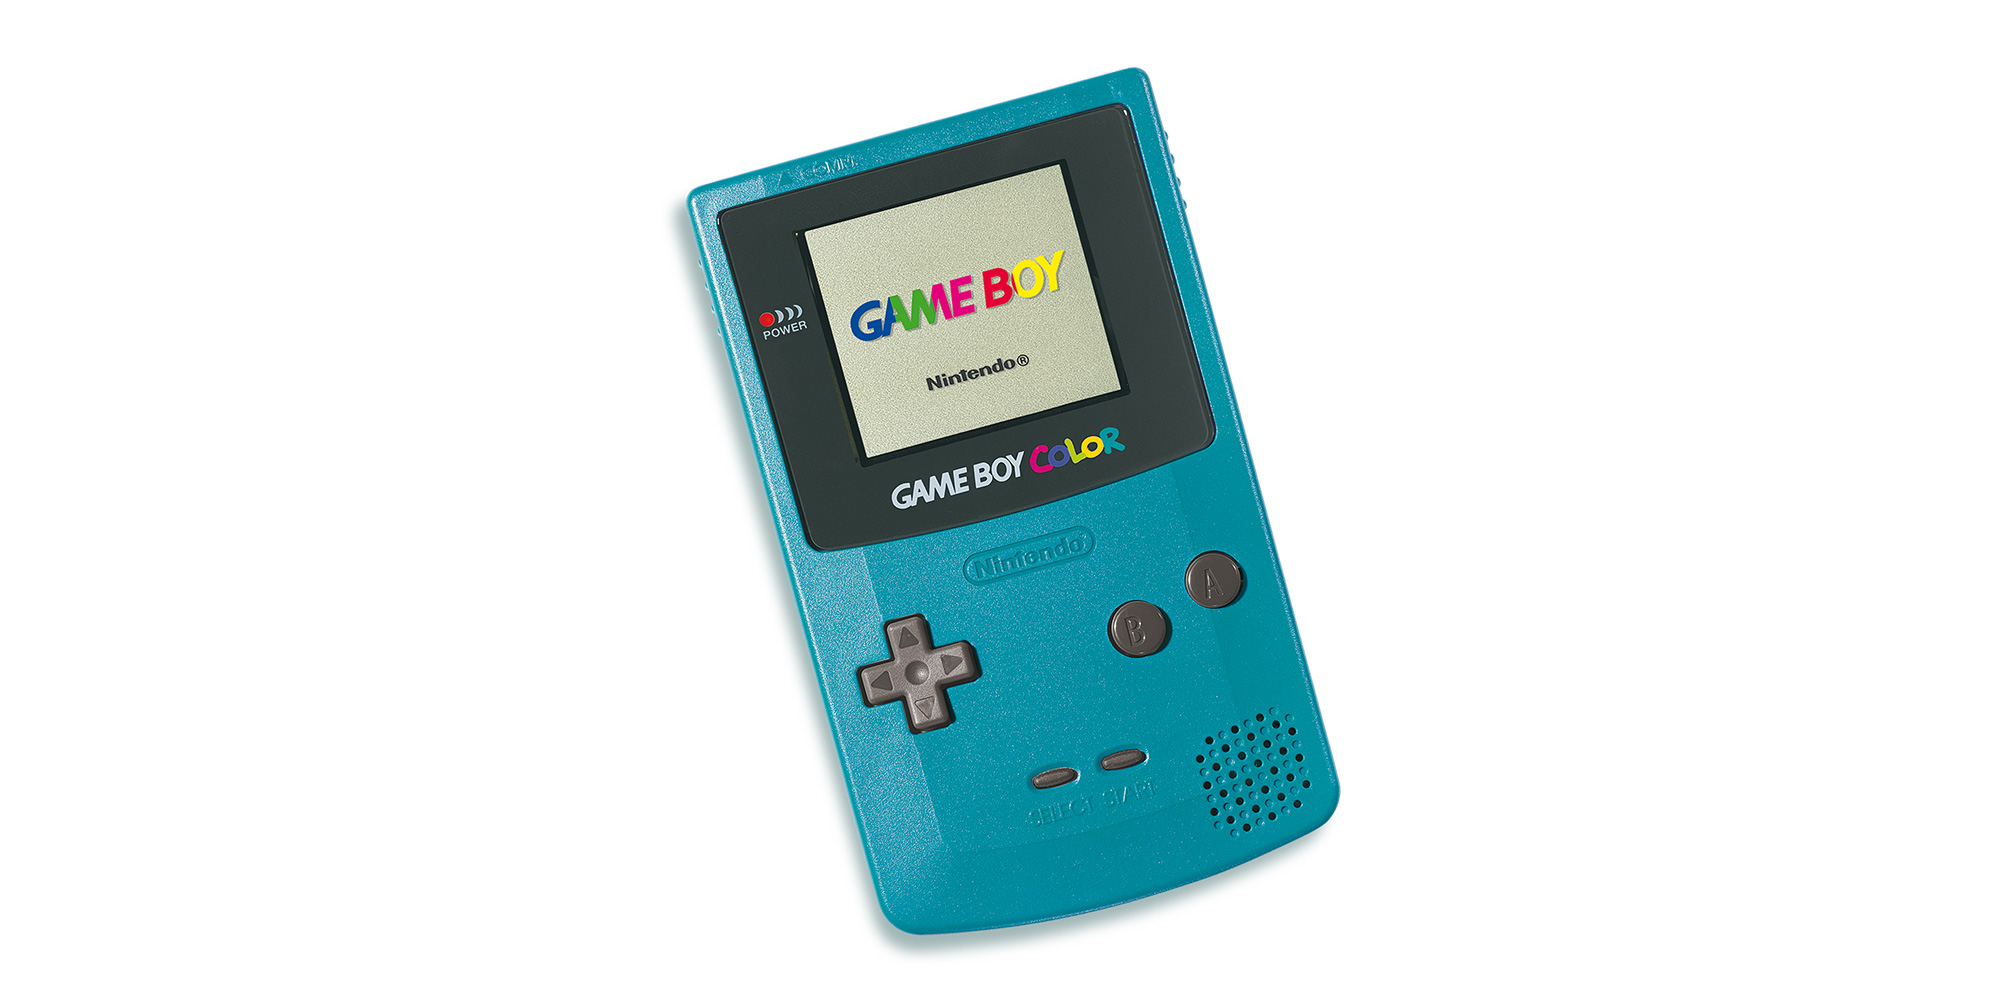 Support for Game Boy Color.